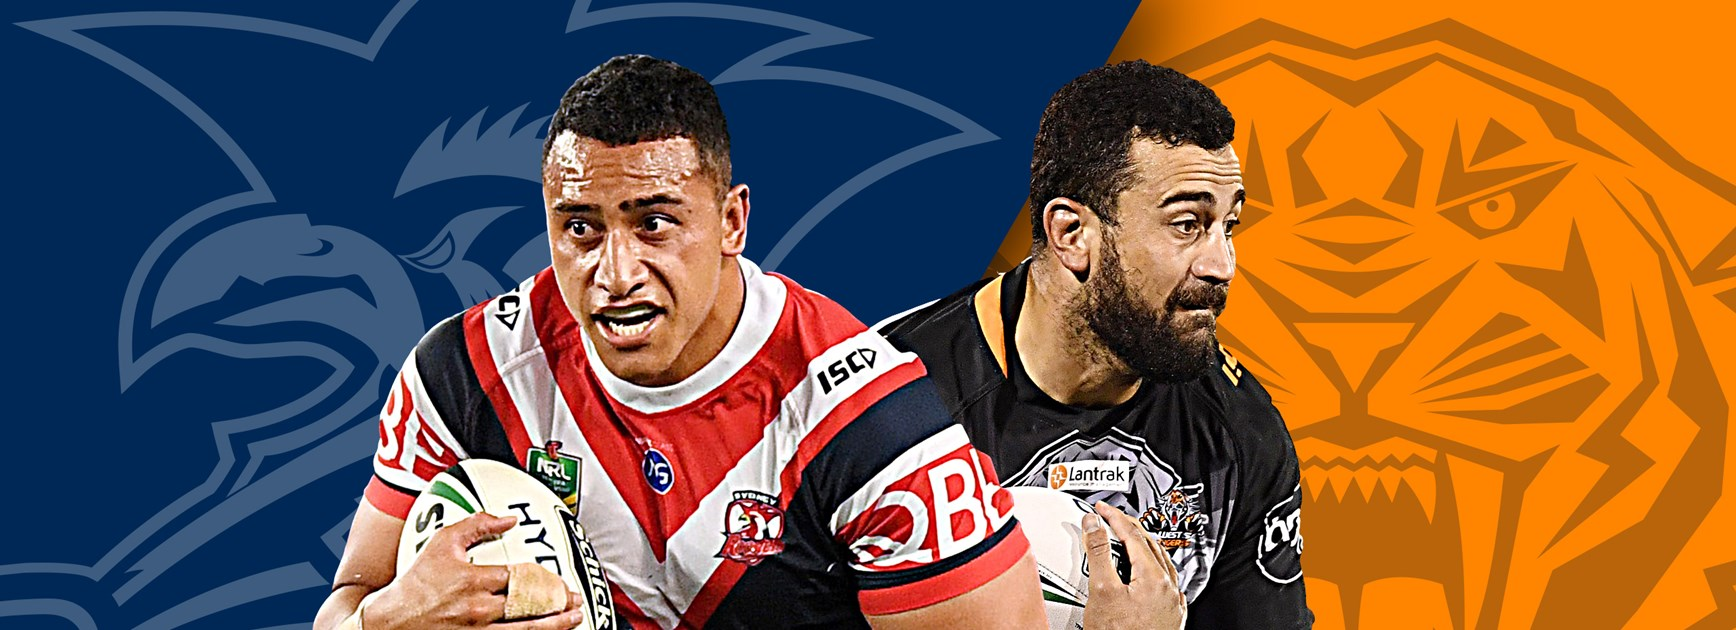 Roosters v Wests Tigers: Matterson out, Grant to start for Tigers